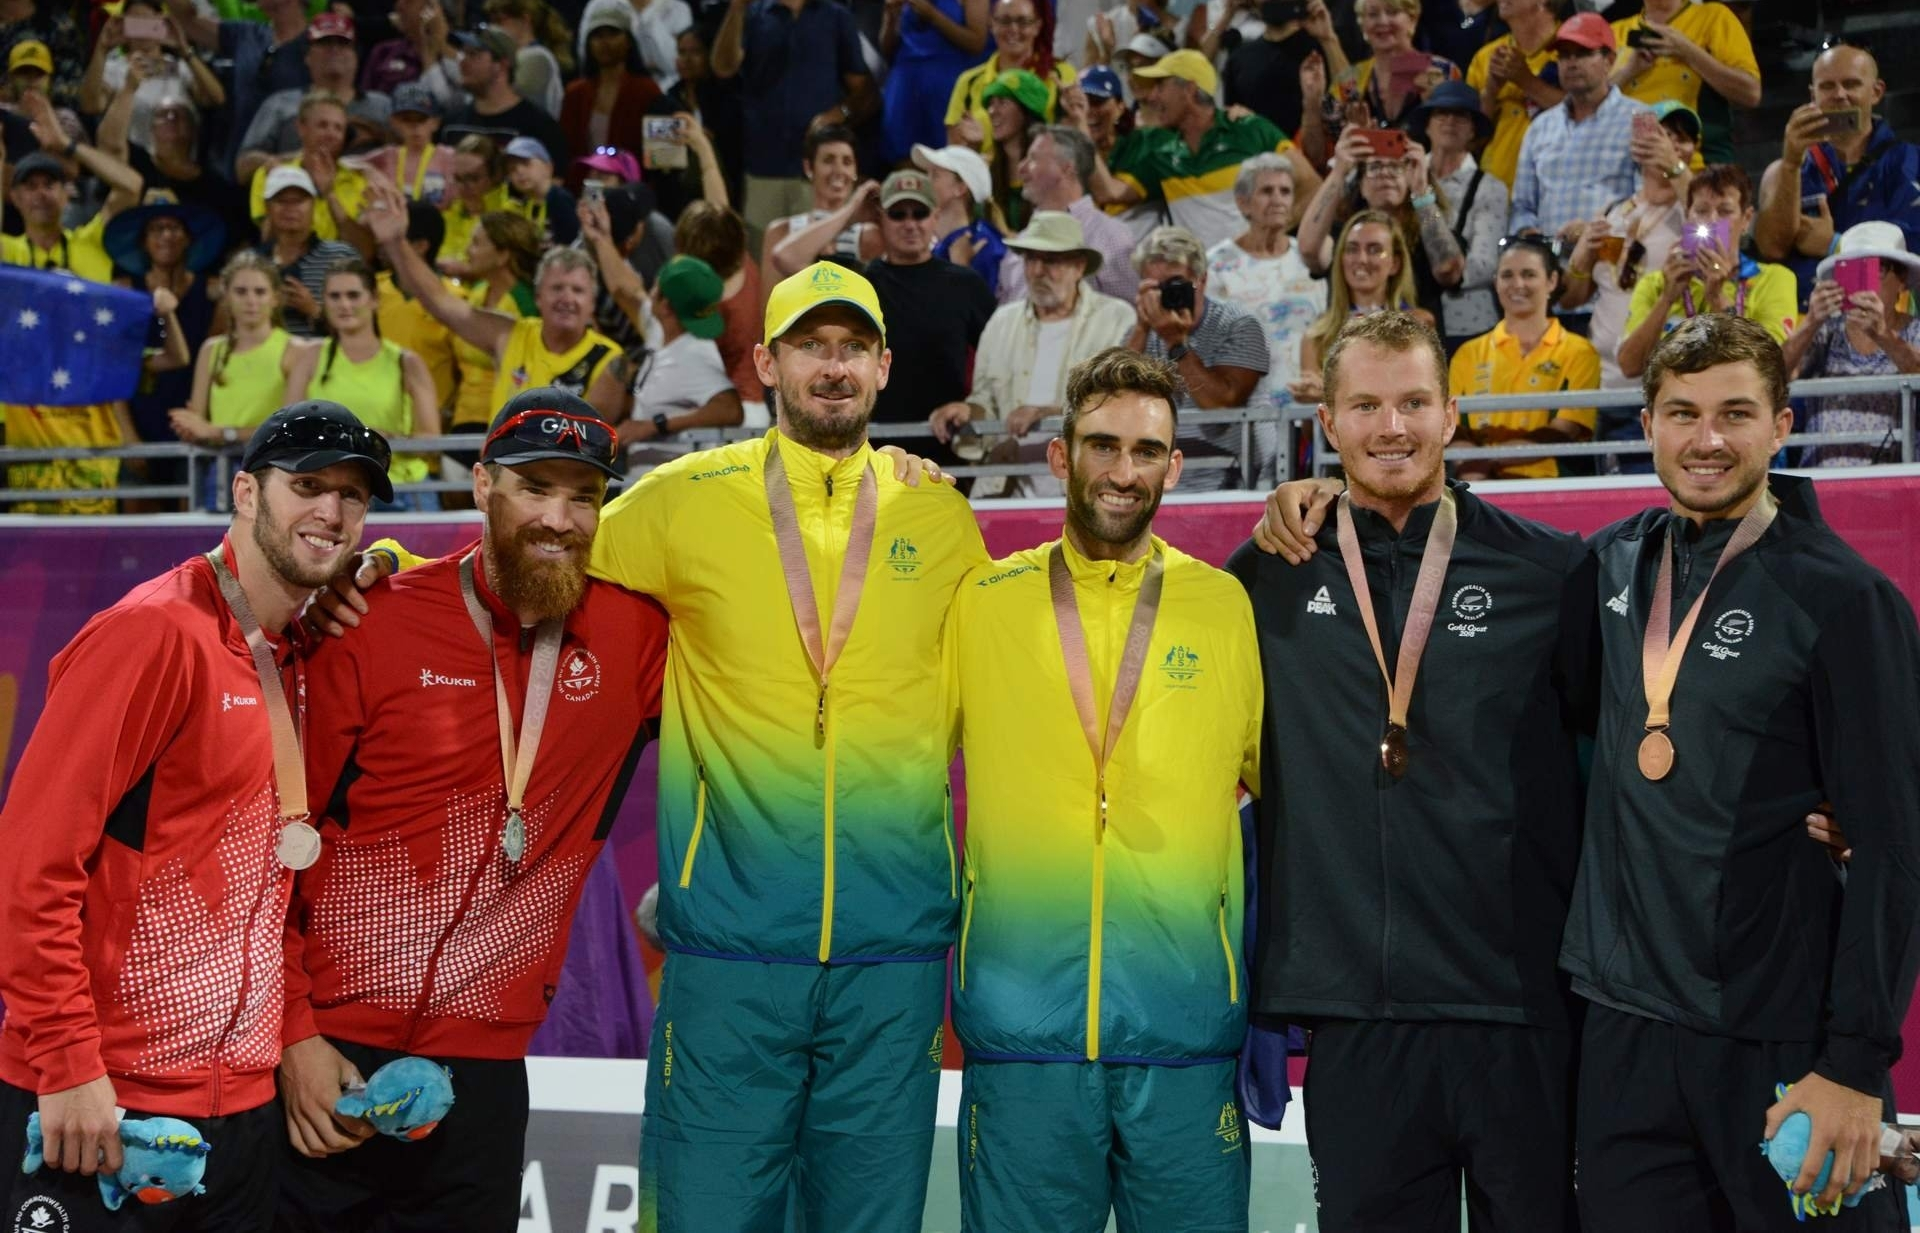 The medalists pose at the awards ceremony. Photocredit: Beach Major Series